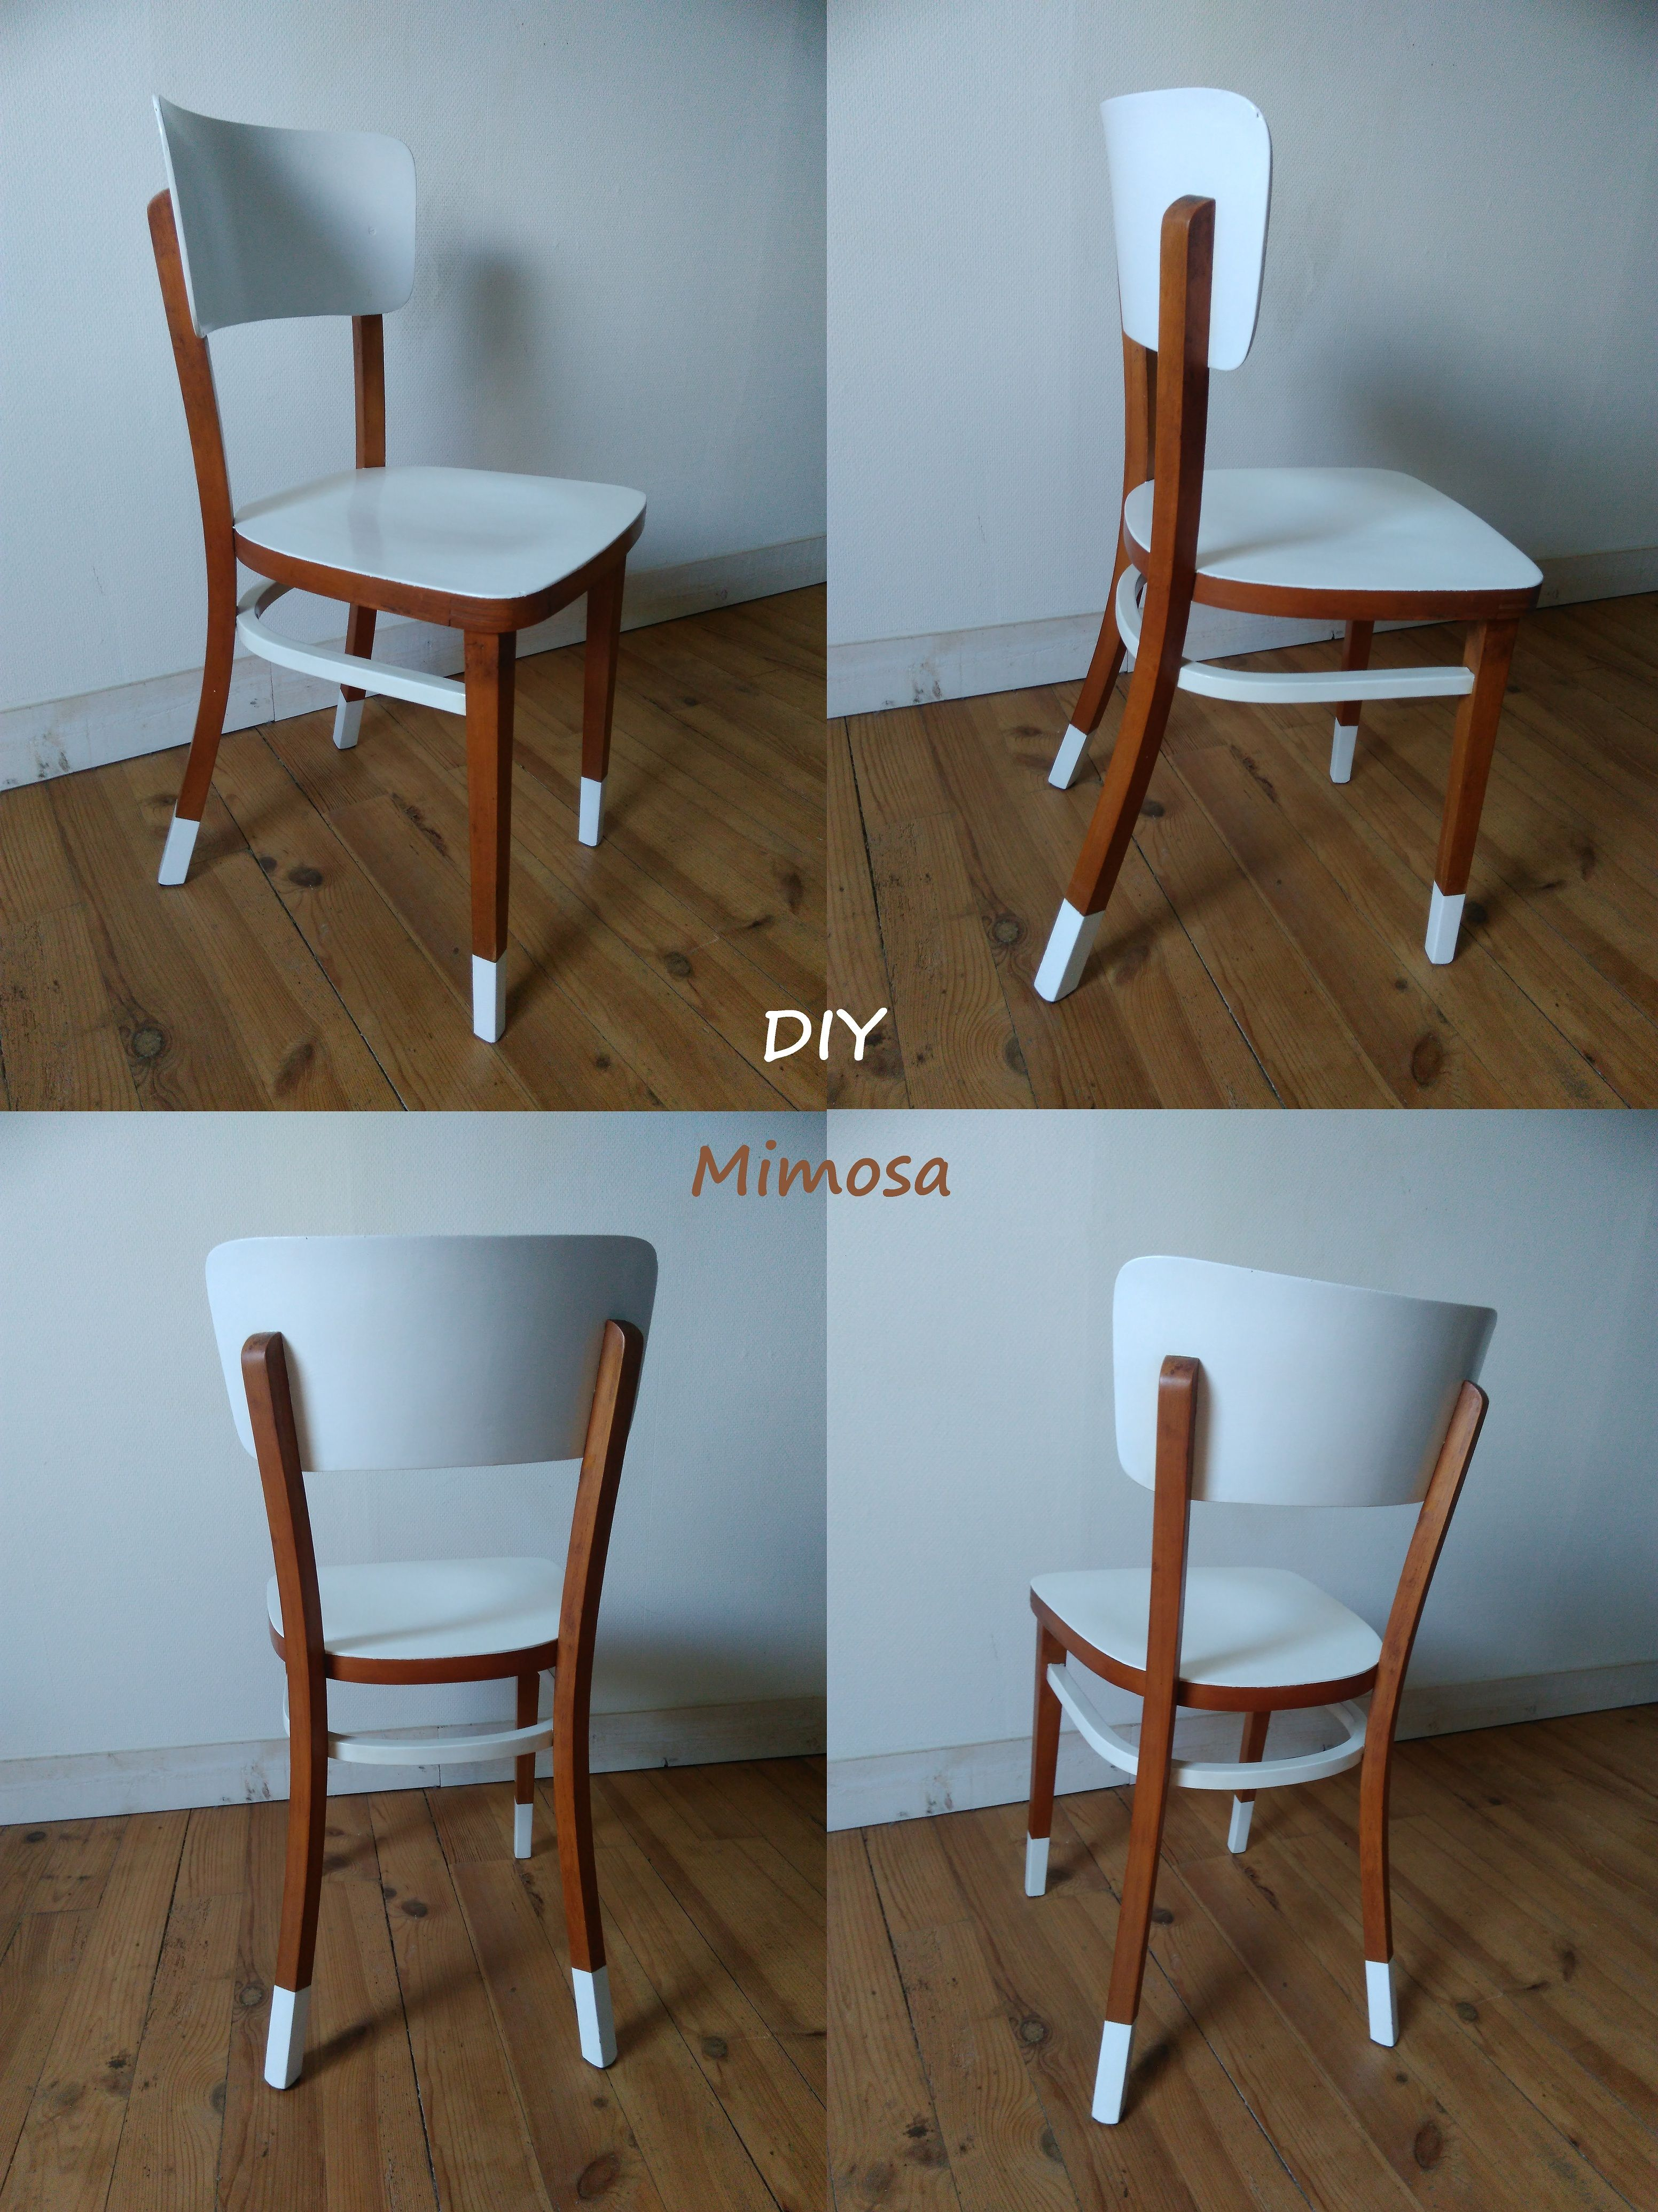 Chaise Style Bistro Vintage Relookee Chaise Repeinte Relooking Meuble Diy Furniture Makeover Diy Vintage Decor Diy Furniture